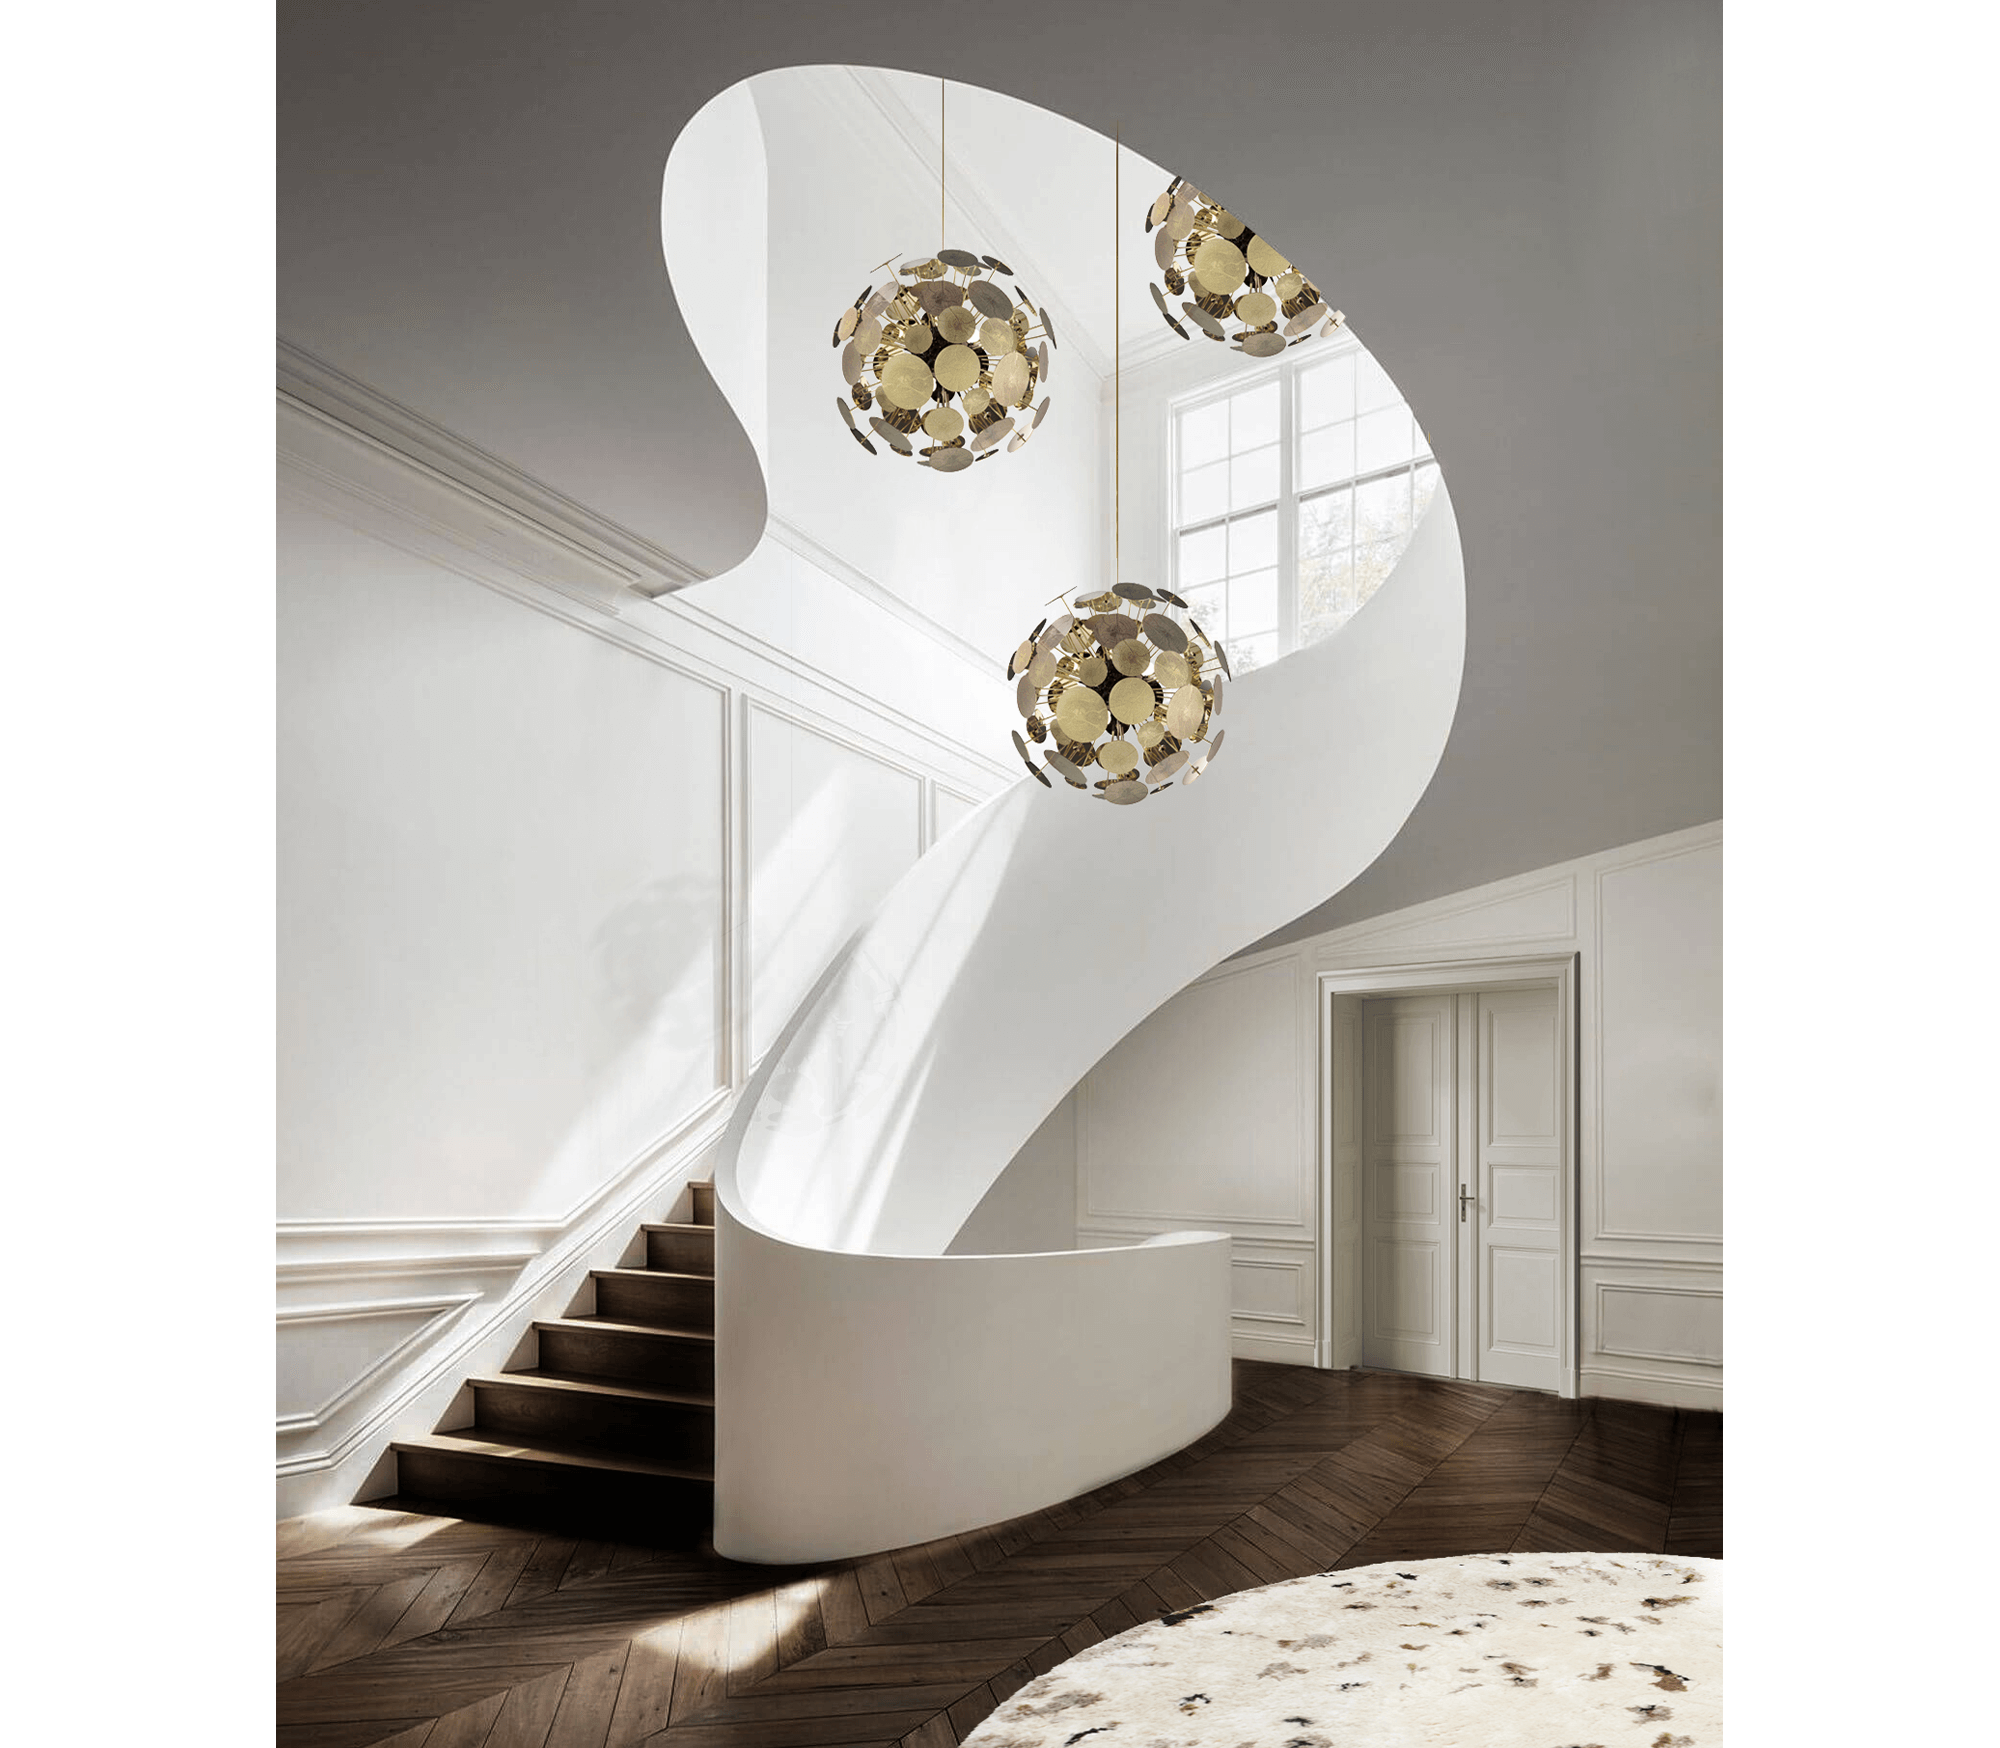 Newton Suspension Lamp by Boca do Lobo